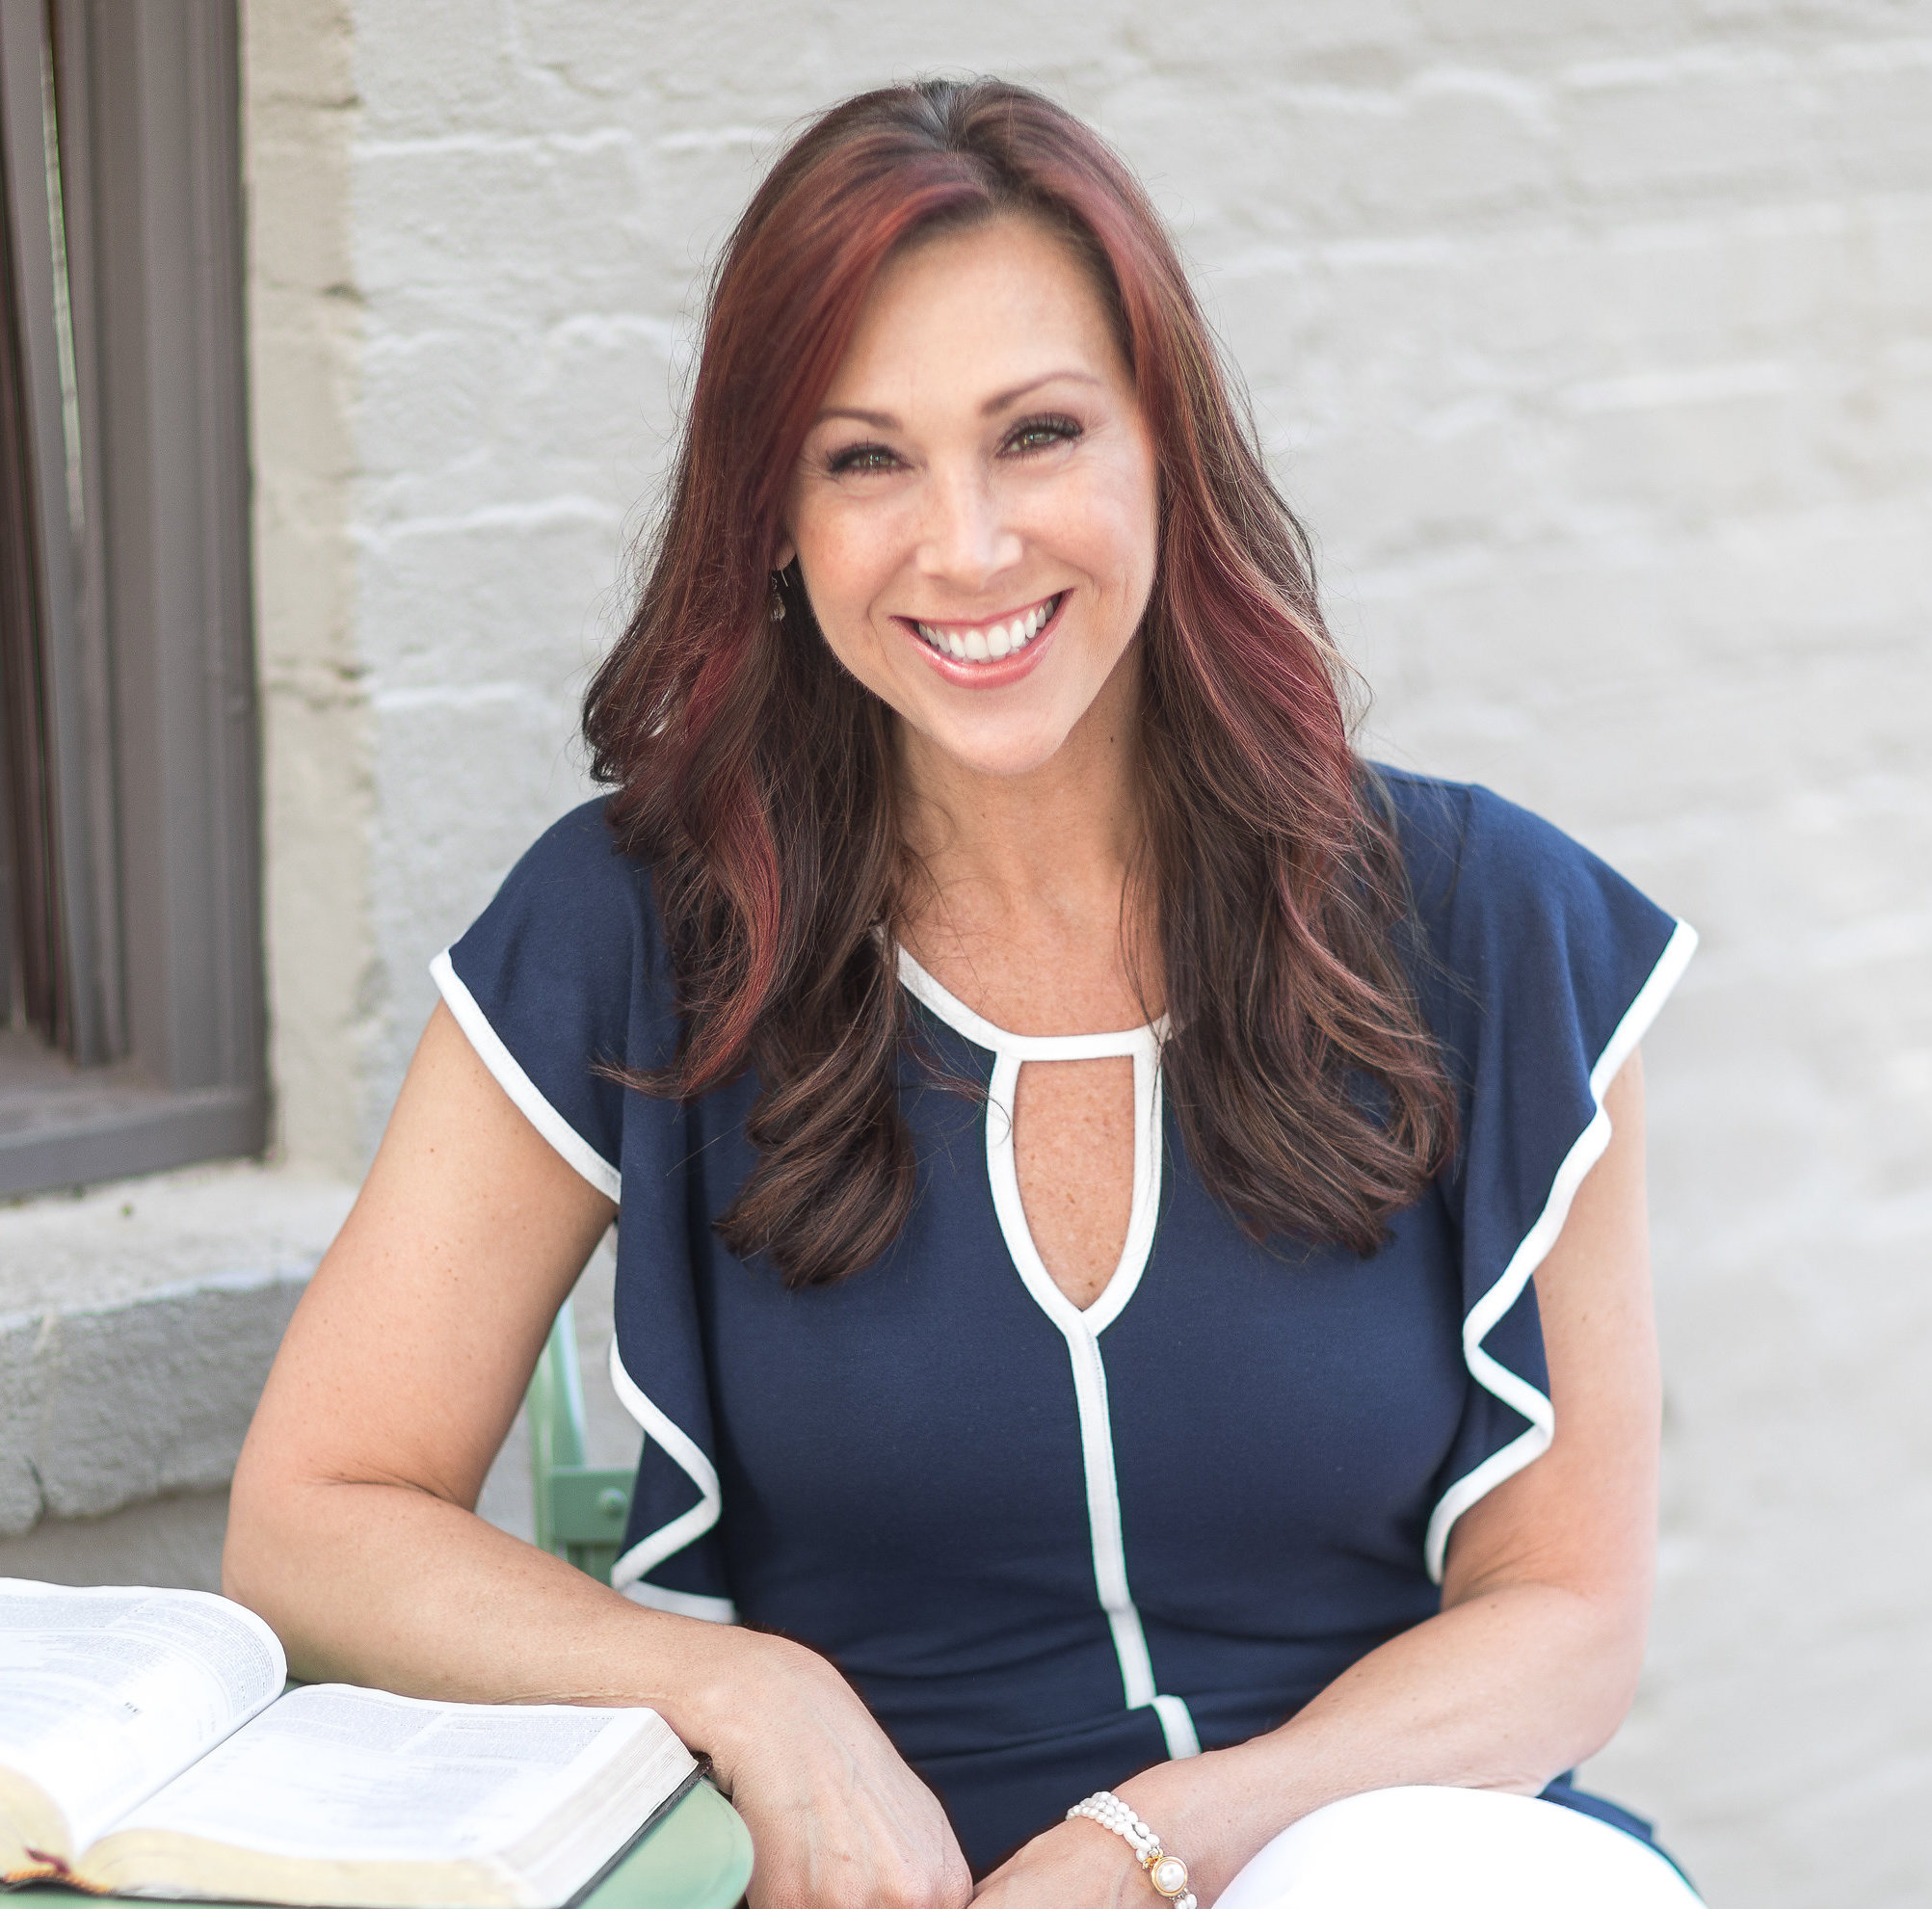 Gwen Smith - Personal, Professional and Ministry Coaching3-month intensiveGain Focus, Bolster your Courage and Sharpen Your Competencies$425/month or $1200Limited to 3-4 Women